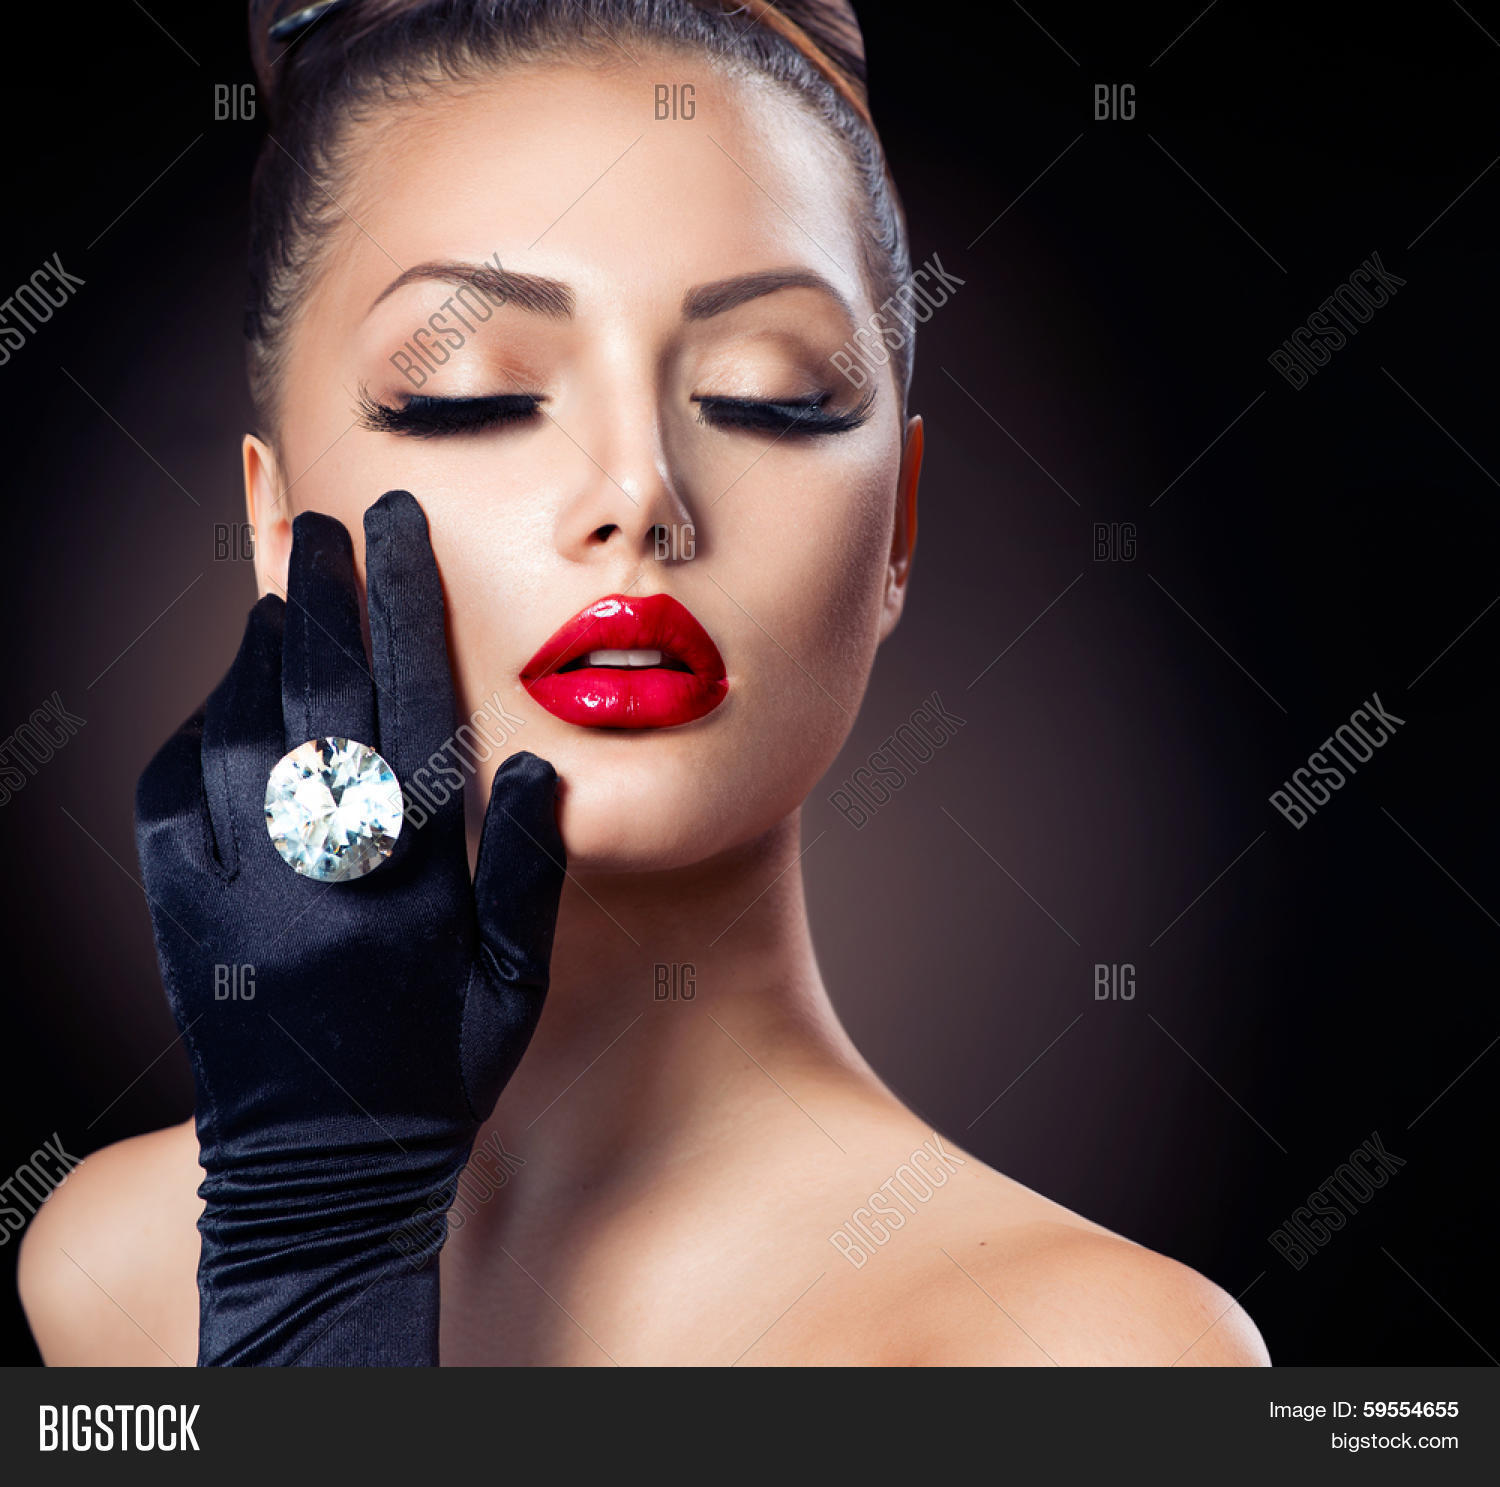 Beauty Fashion Glamour Image & Photo (Free Trial) | Bigstock